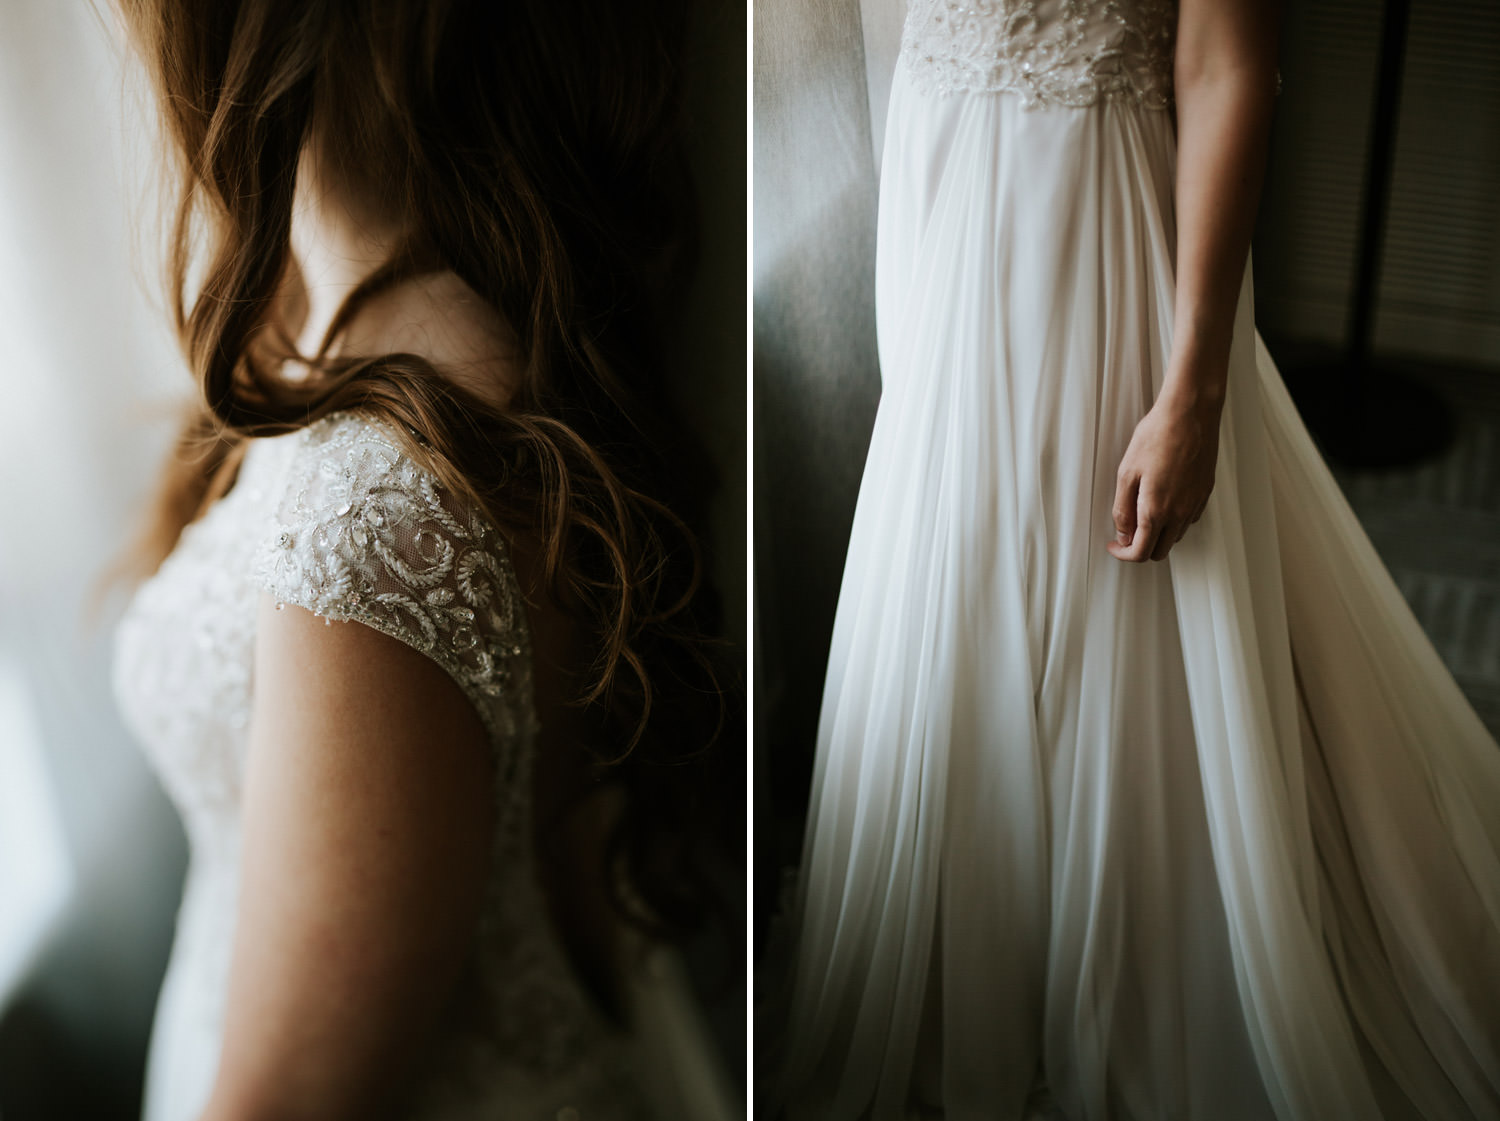 Fine art portraits of the bride at Chicago